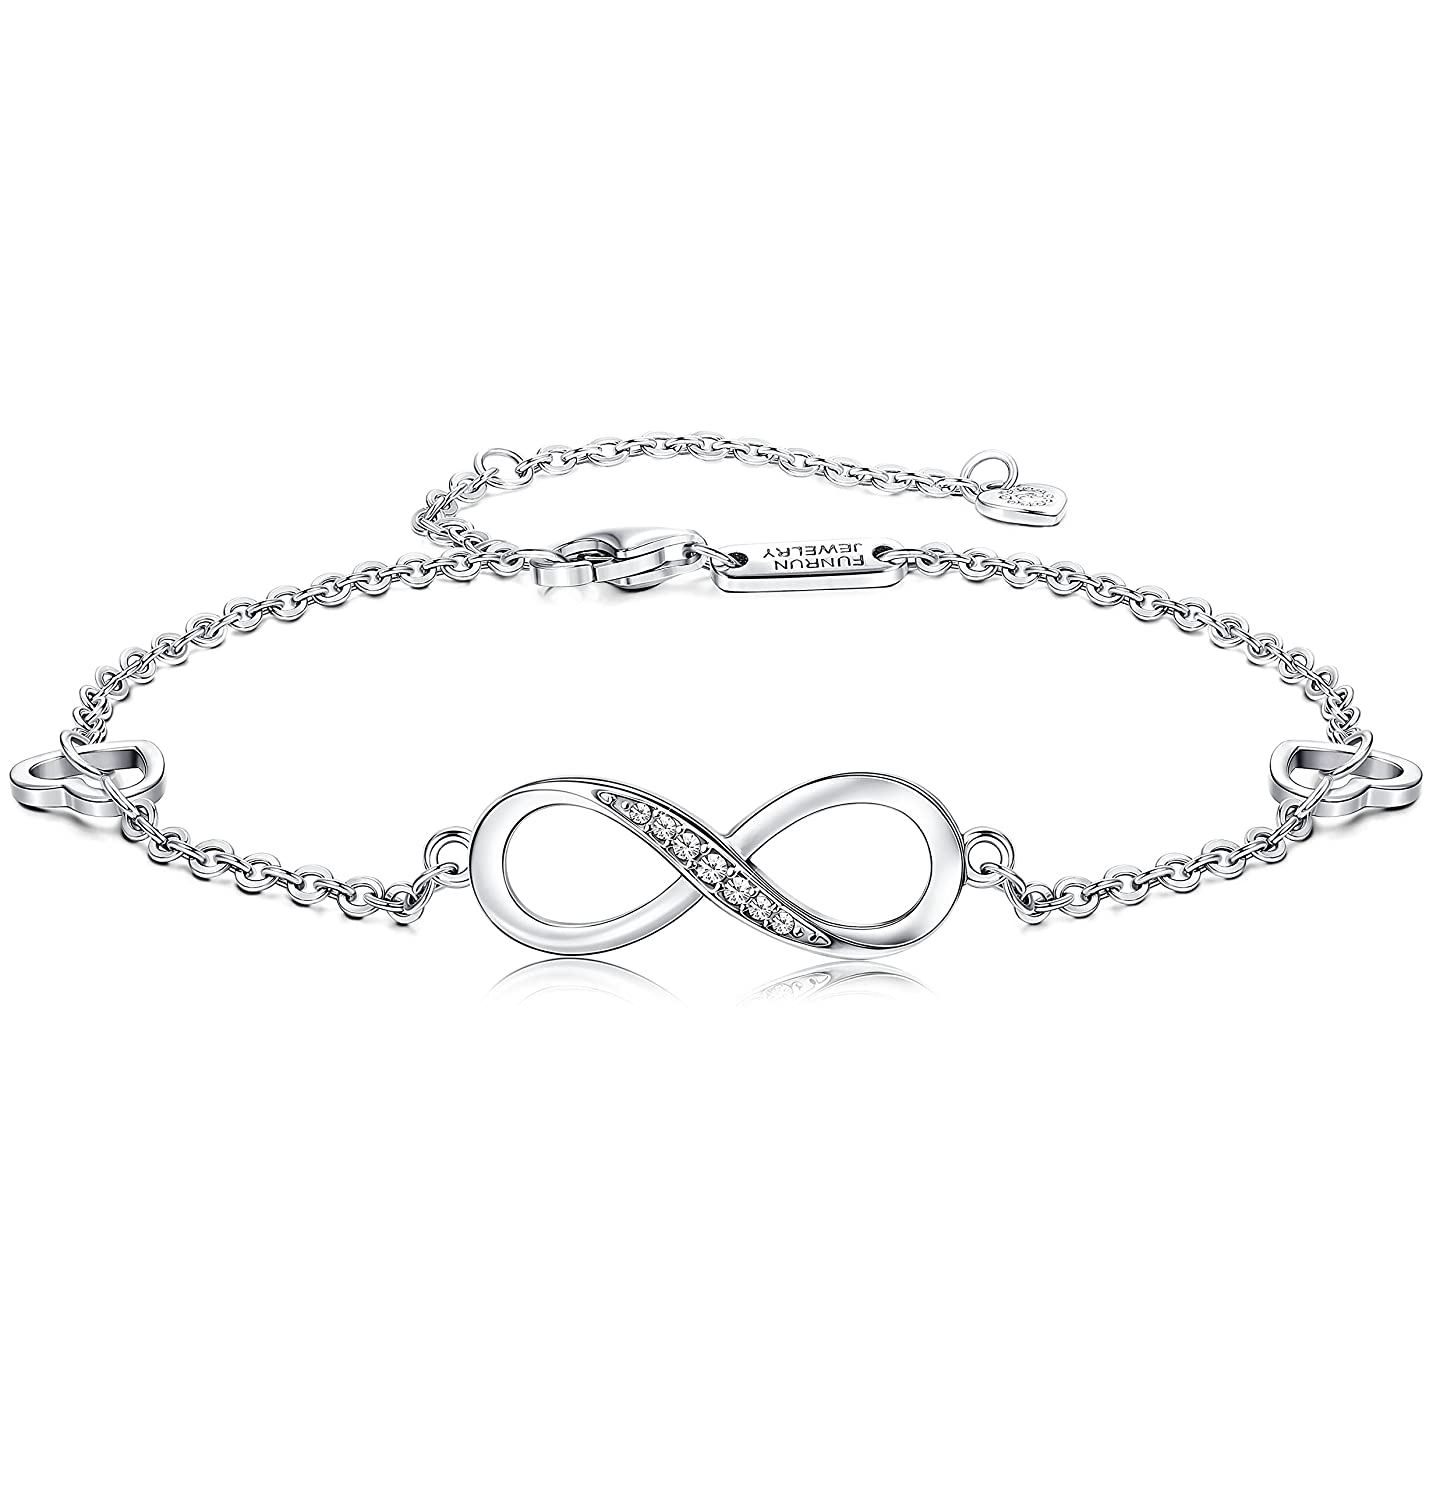 FUNRUN JEWELRY 925 Sterling Silver Infinity Bracelets and Anklet Bracelets for Women Girls 4-Level Adjustable Length Gift for Mother?ˉs Day